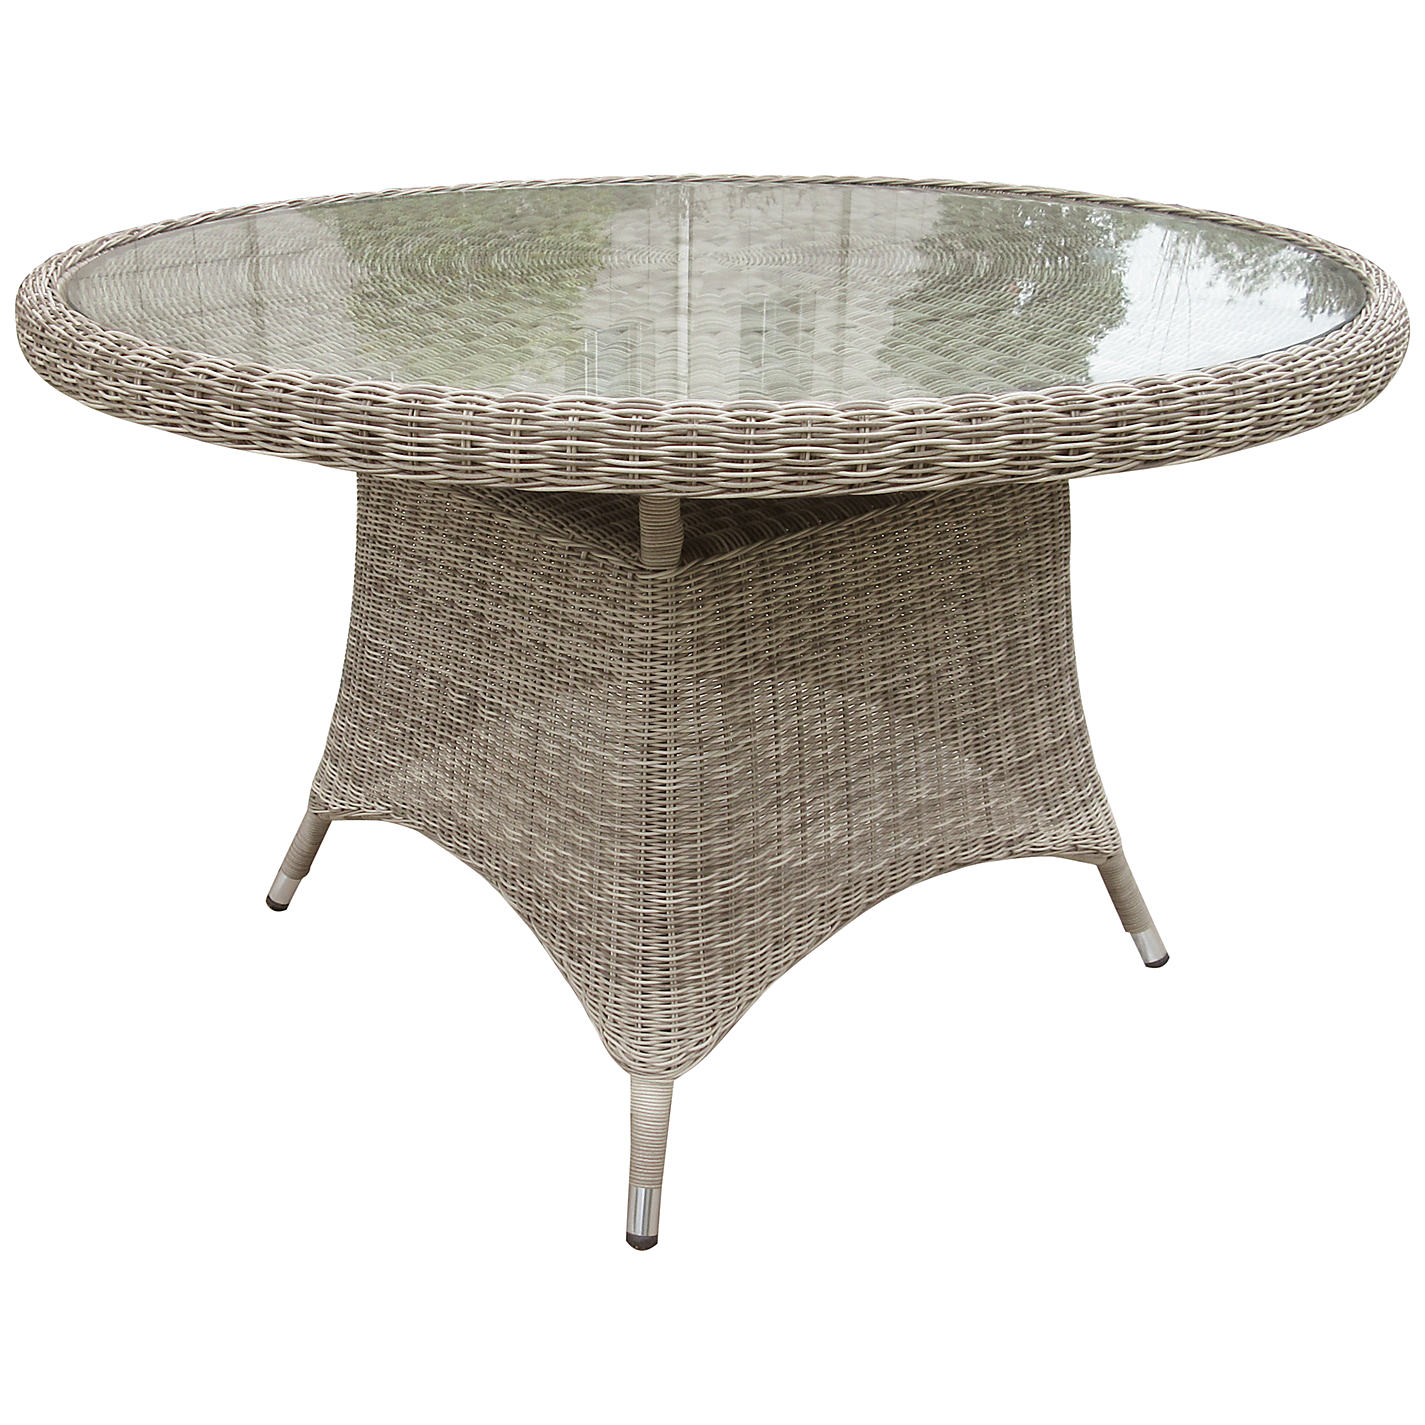 buy john lewis dante 4 seater outdoor dining table online at johnlewiscom